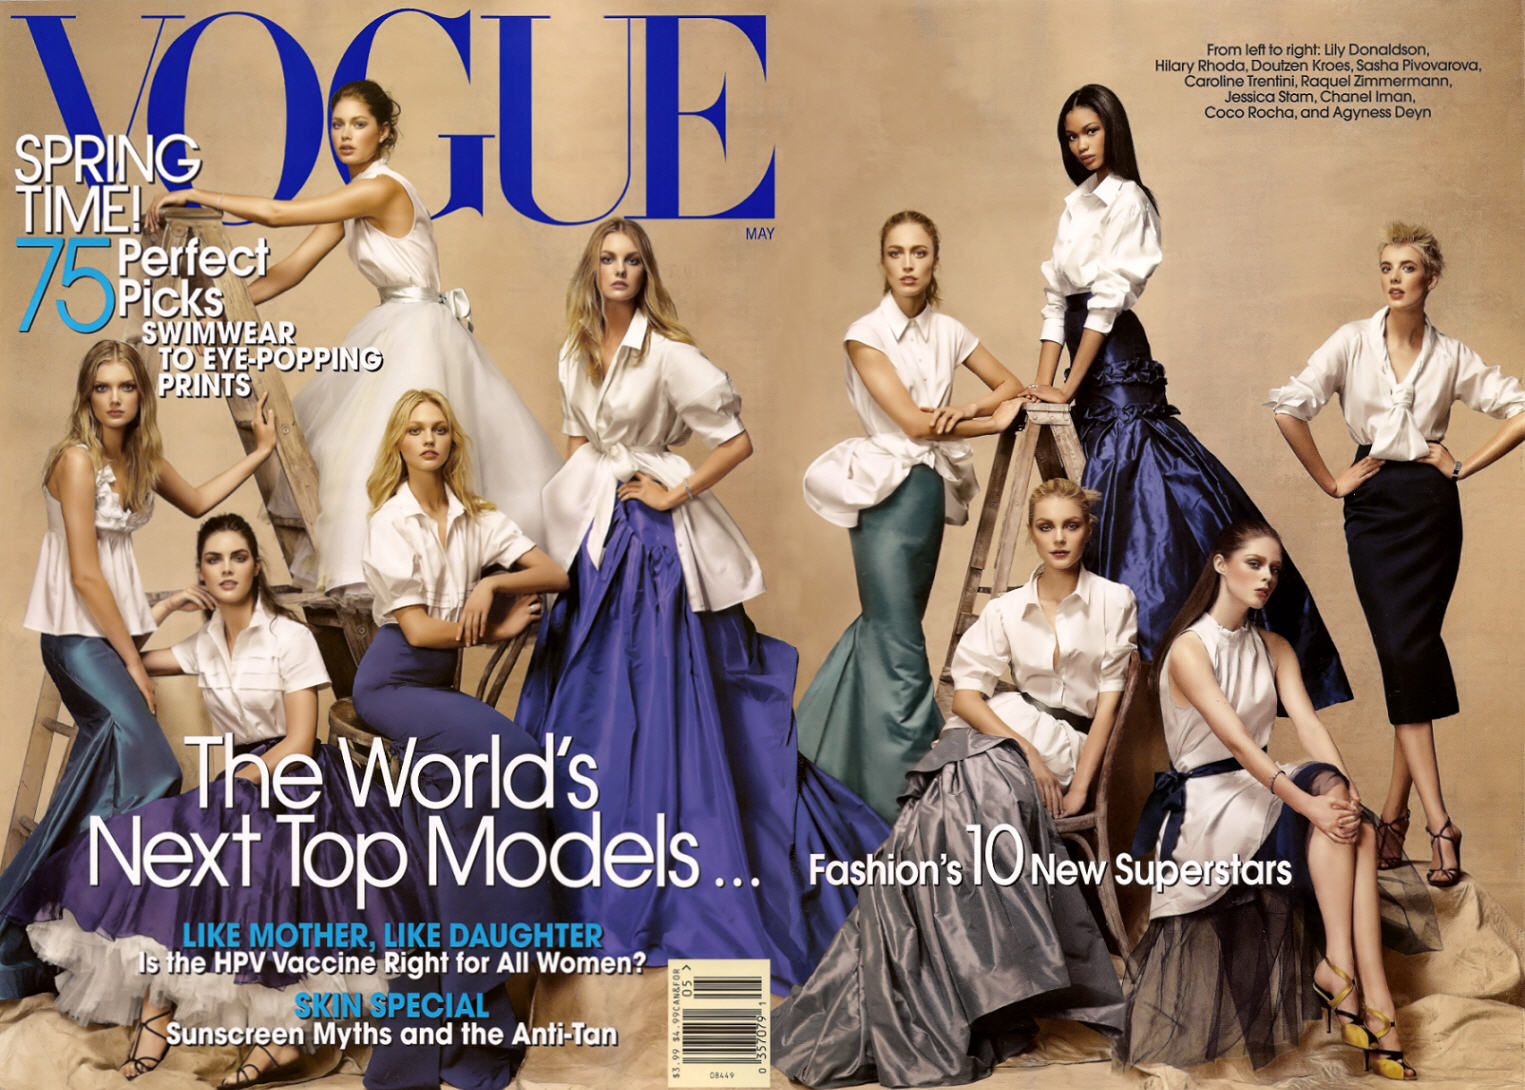 Duel of Models and Covers The Magazine Love: Gisele Bundchen and Agyness Deyn, among Others